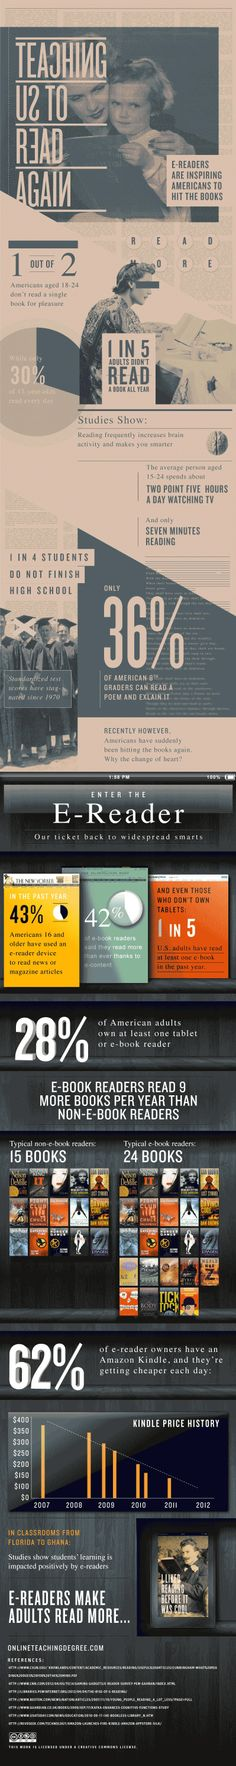 Teaching to read again [infographic]